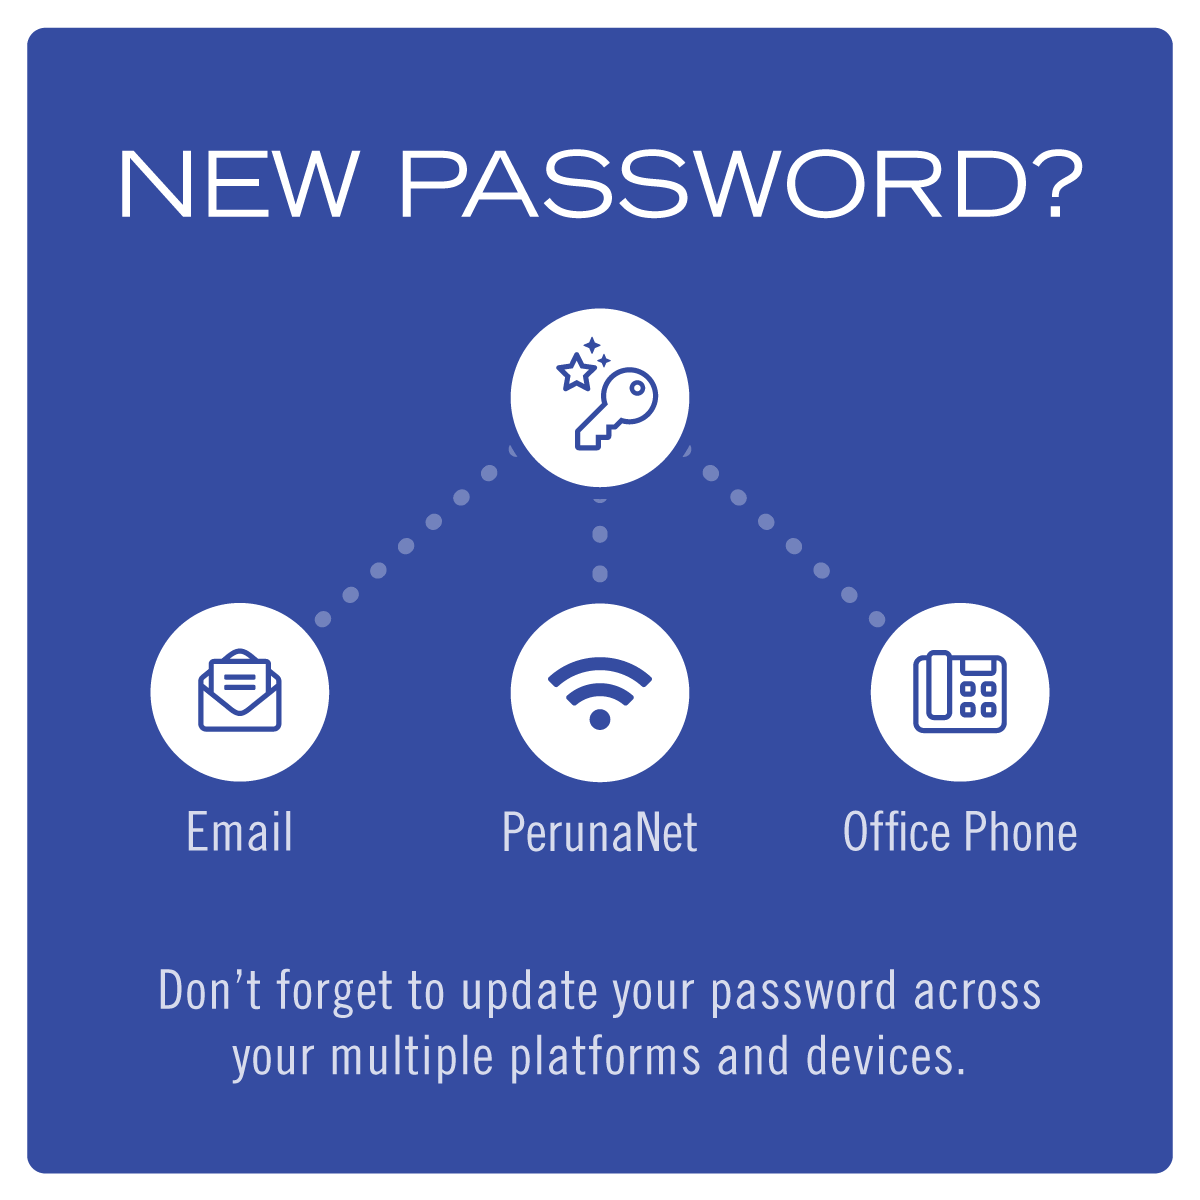 New Password? Update it on all devices.